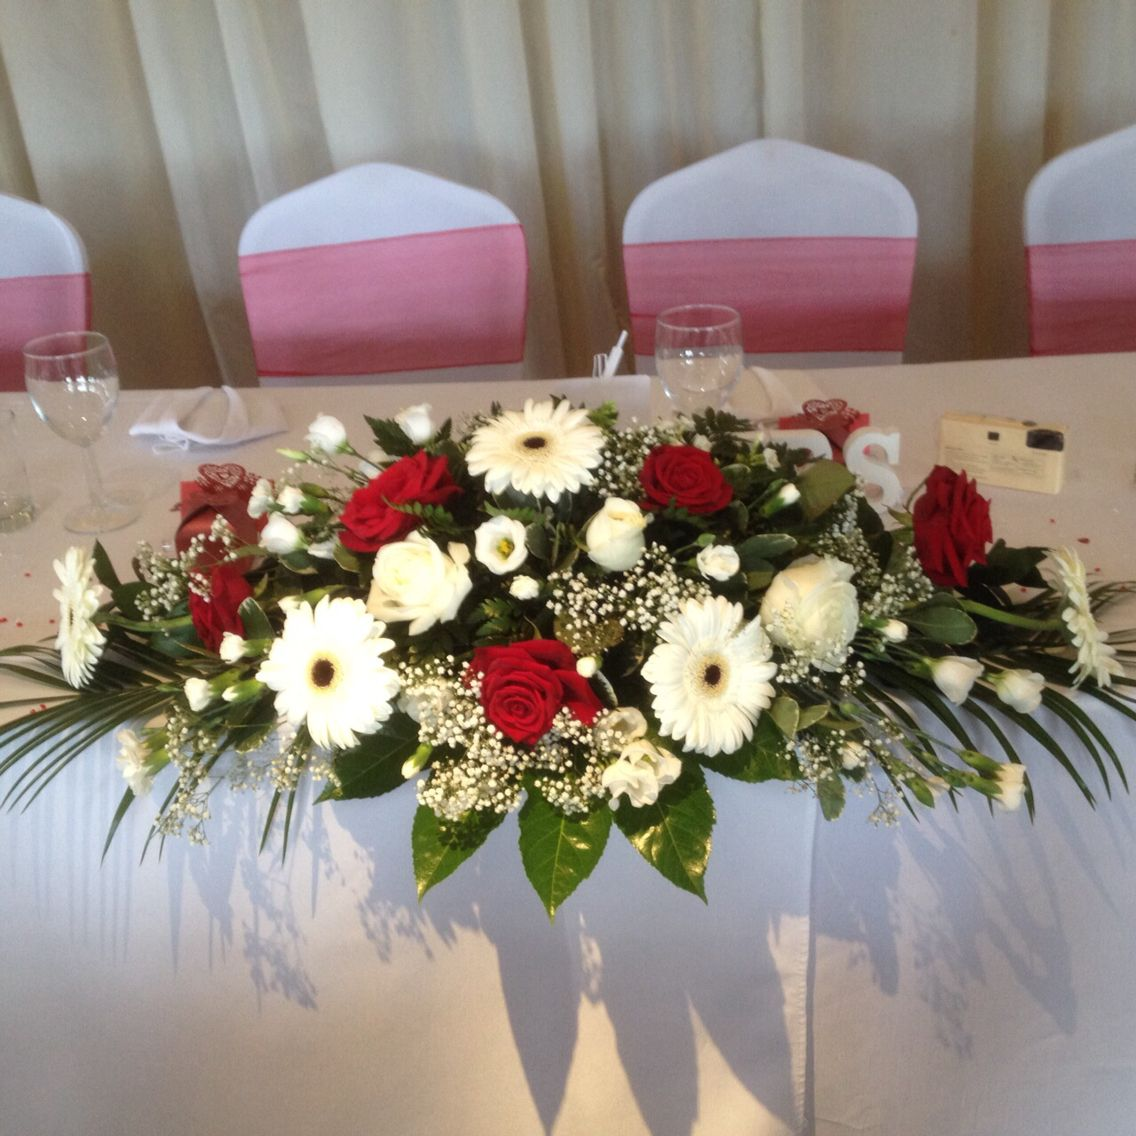 Flower Table Arrangements For Weddings: Top Table Arrangement In Roses And Gerbera Red And White